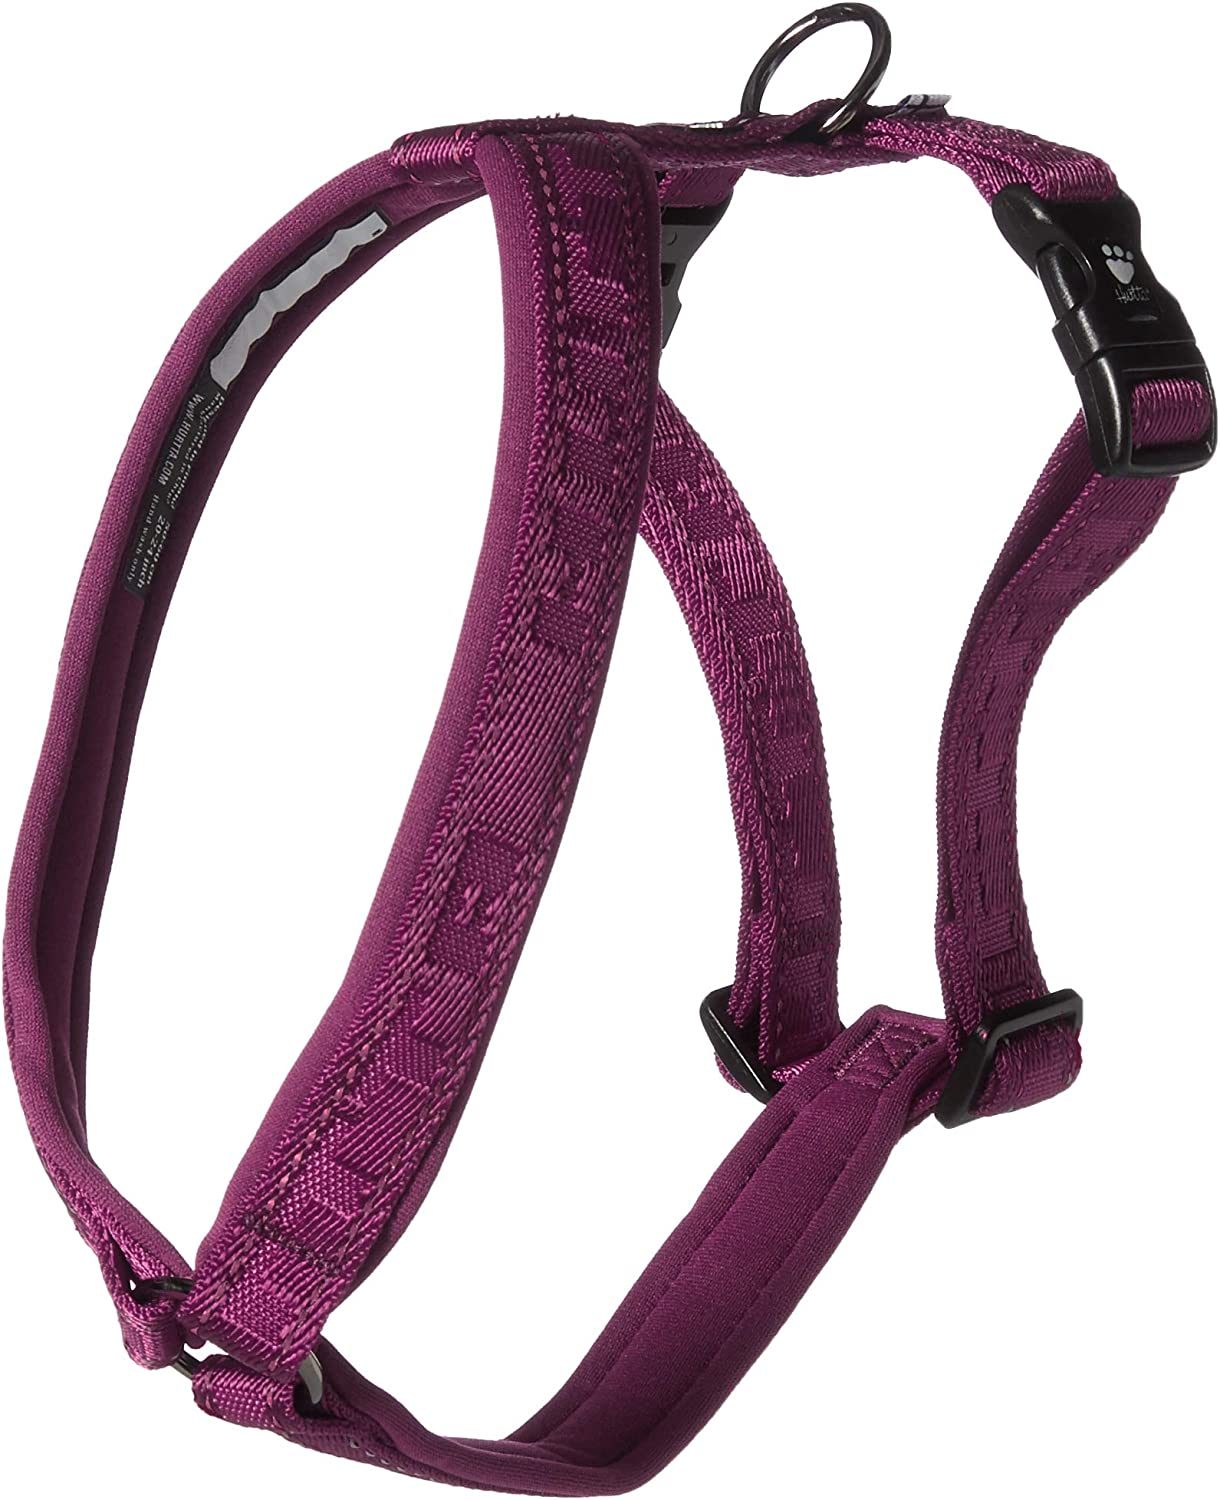 Hurtta Casual Padded Dog Y-Harness 39 in Ash